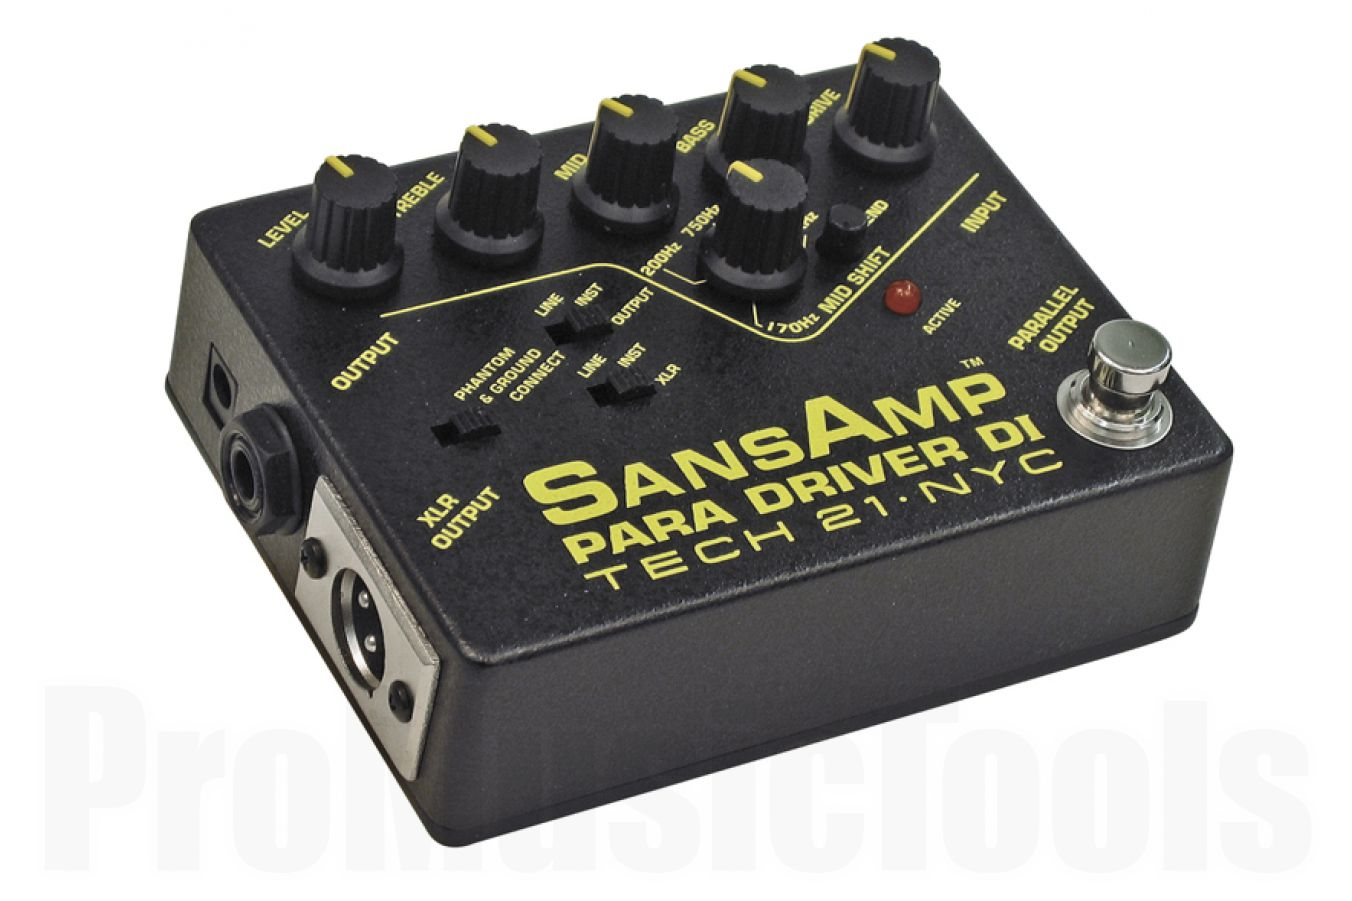 Tech 21 USA SansAmp Para Driver D.I. Preamp - b-stock (1x opened box)